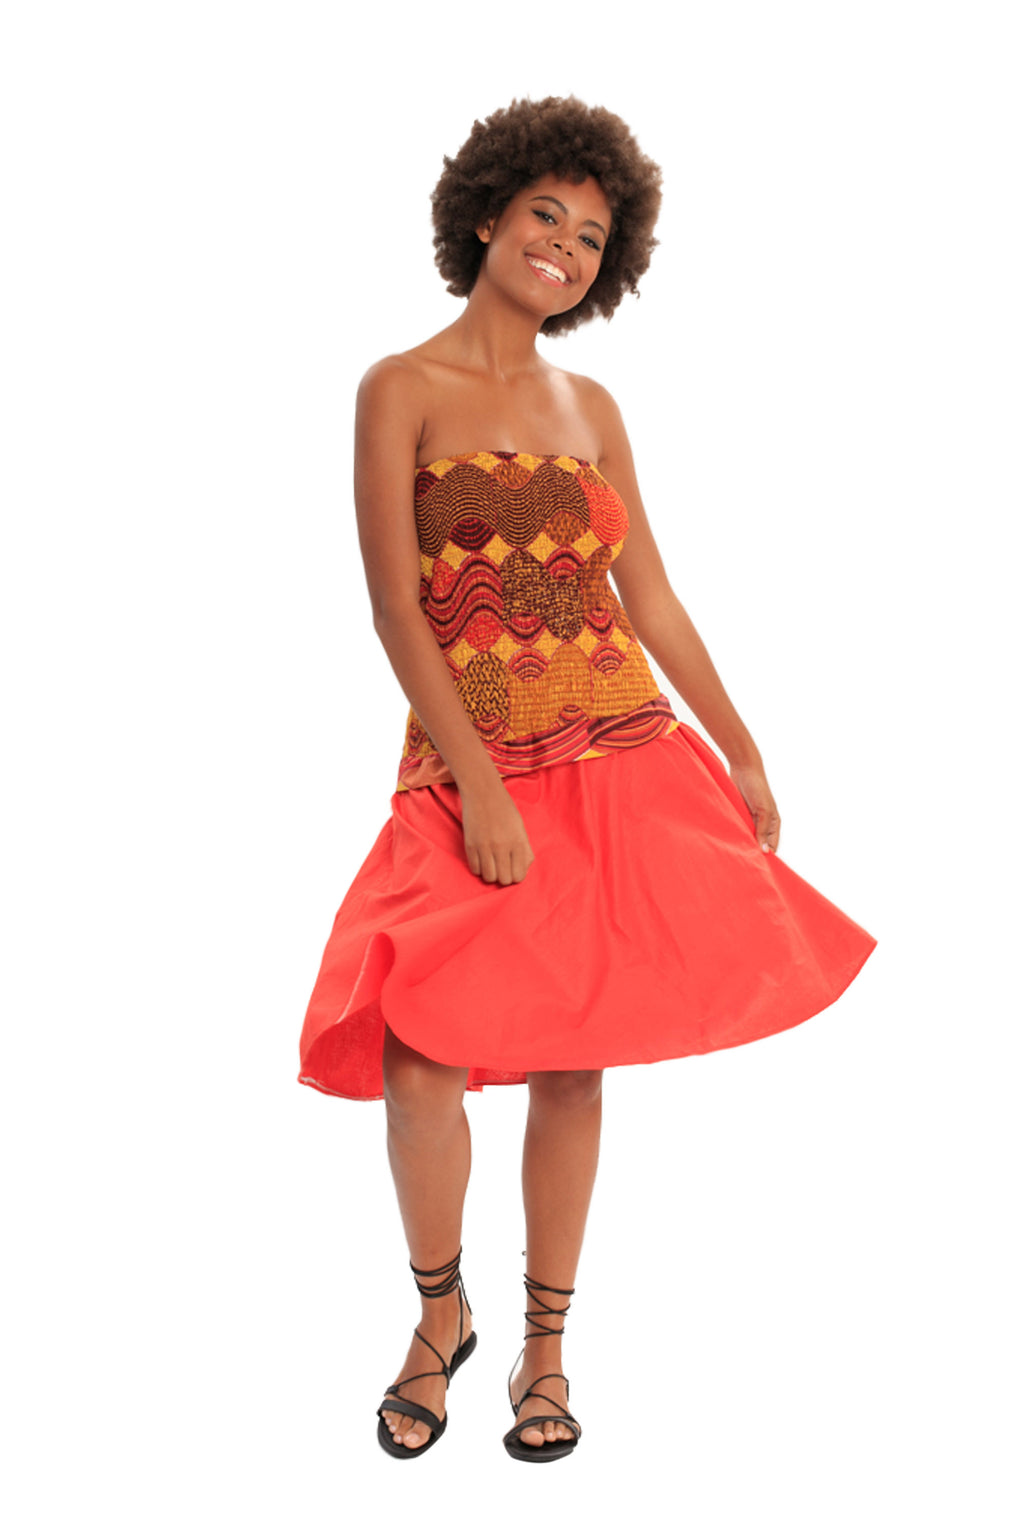 African Convertible Skirt to Dress - ATLANTIC BEAUTY MERMAID